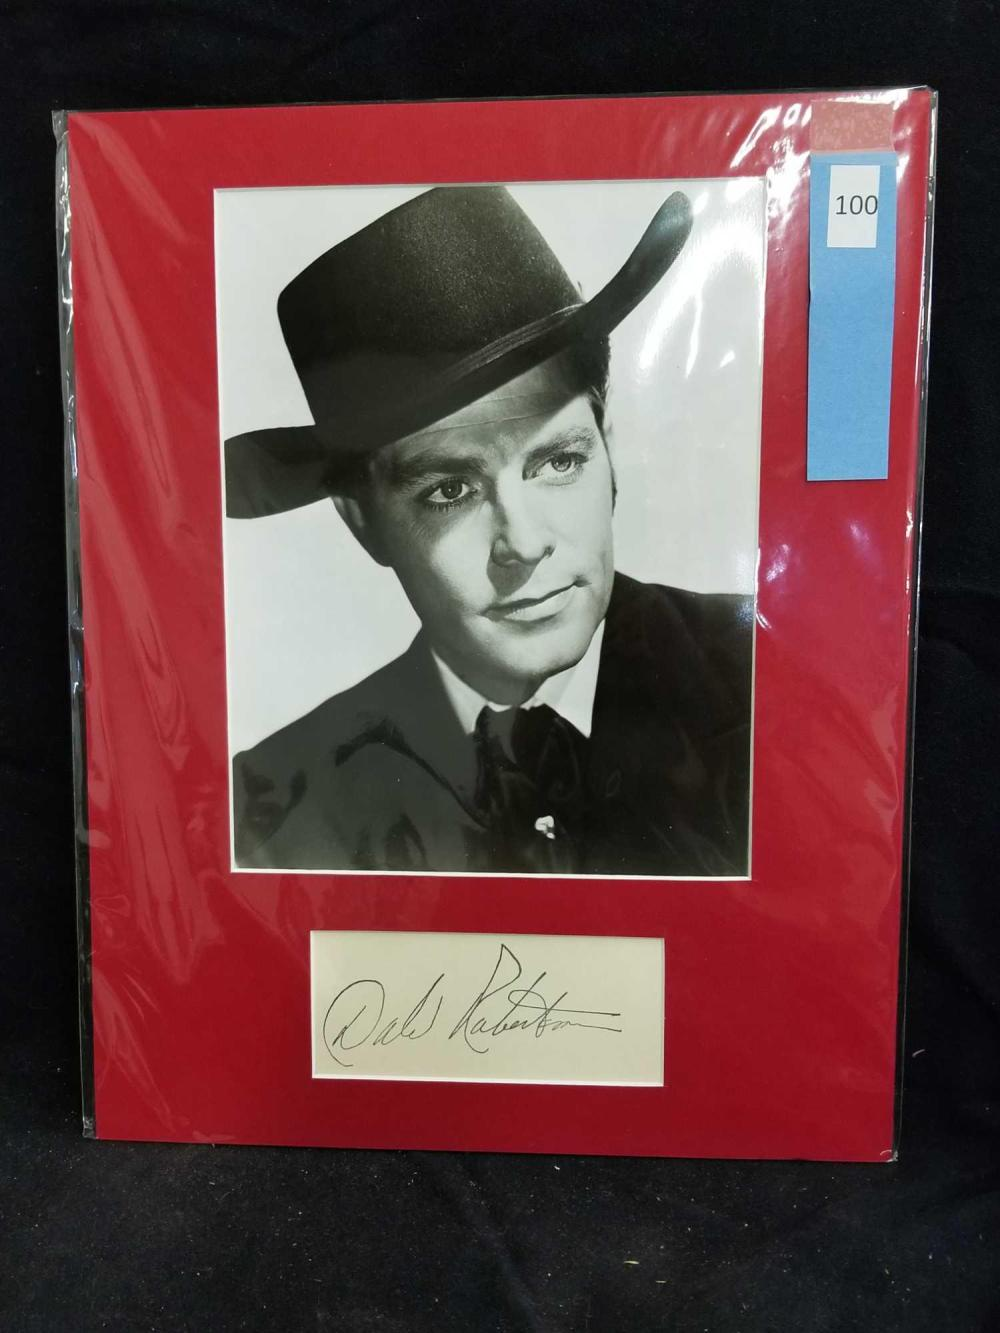 DALE ROBERTSON BLACK & WHITE PUBLICITY PHOTO & SIGNATURE CARD